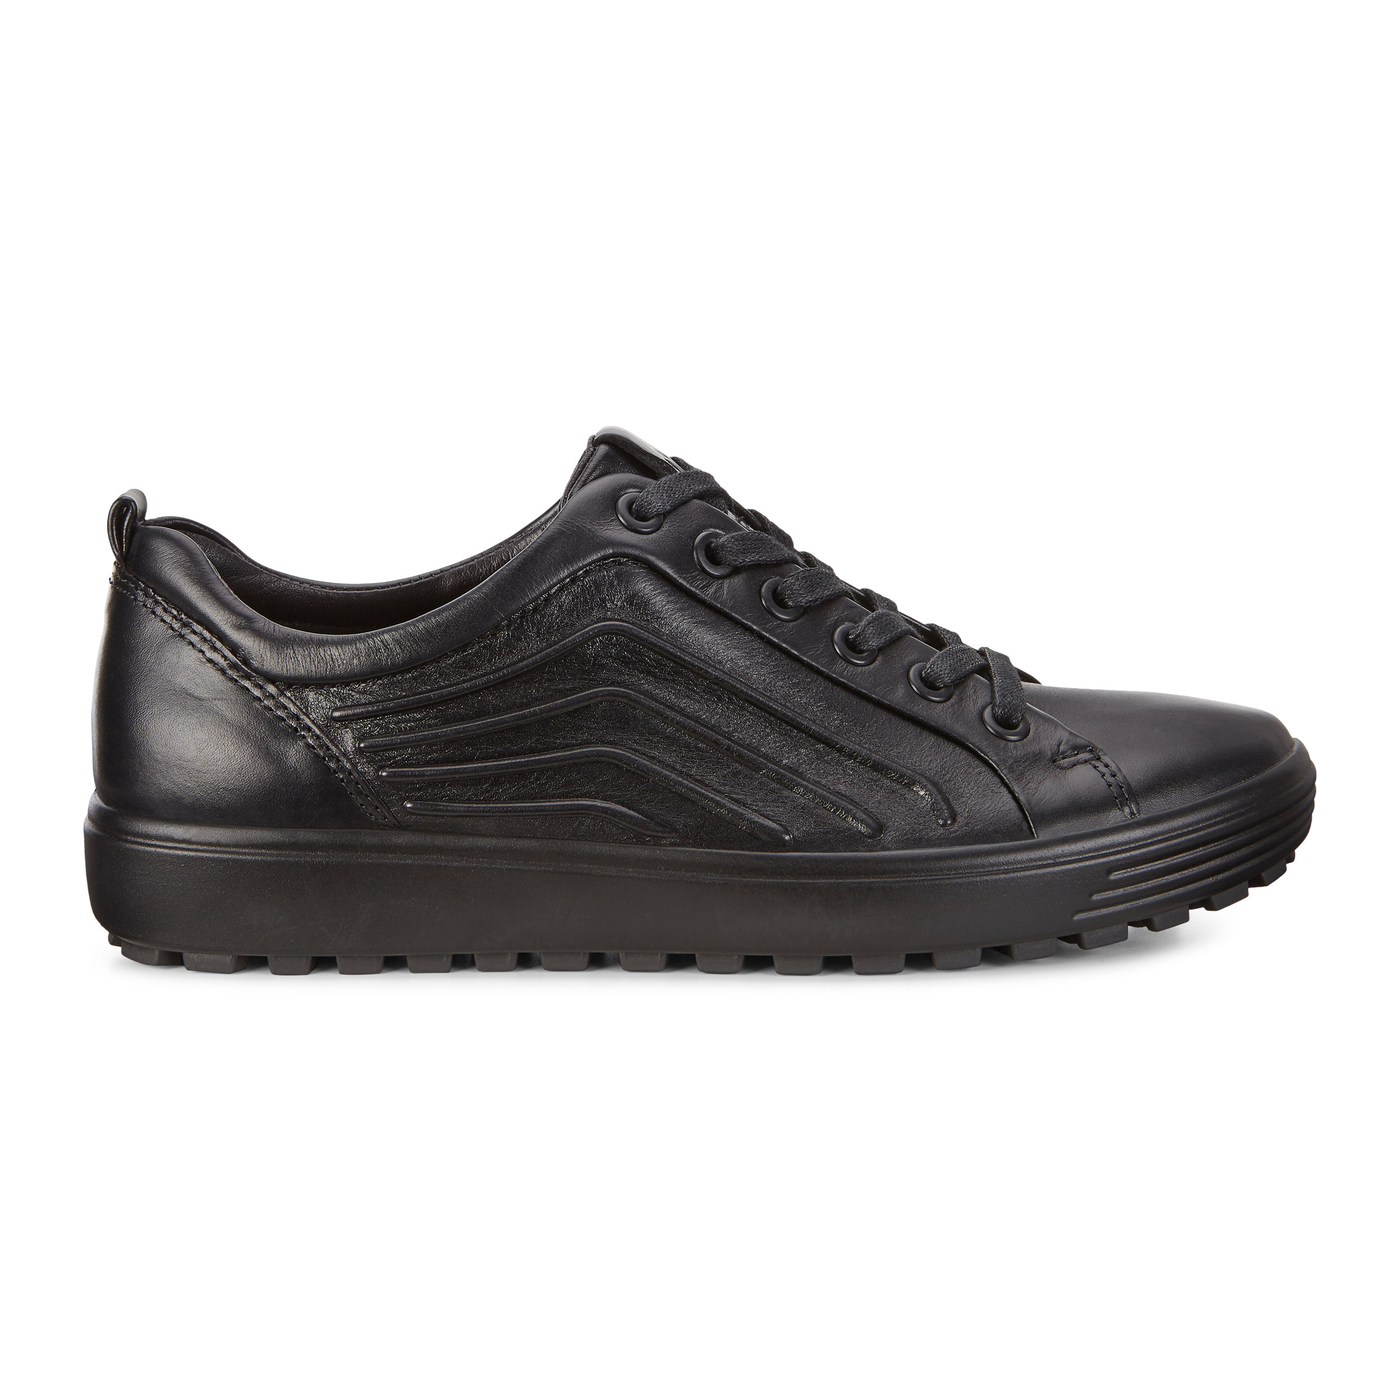 ECCO SOFT7 TRED Womens Sneaker Lace